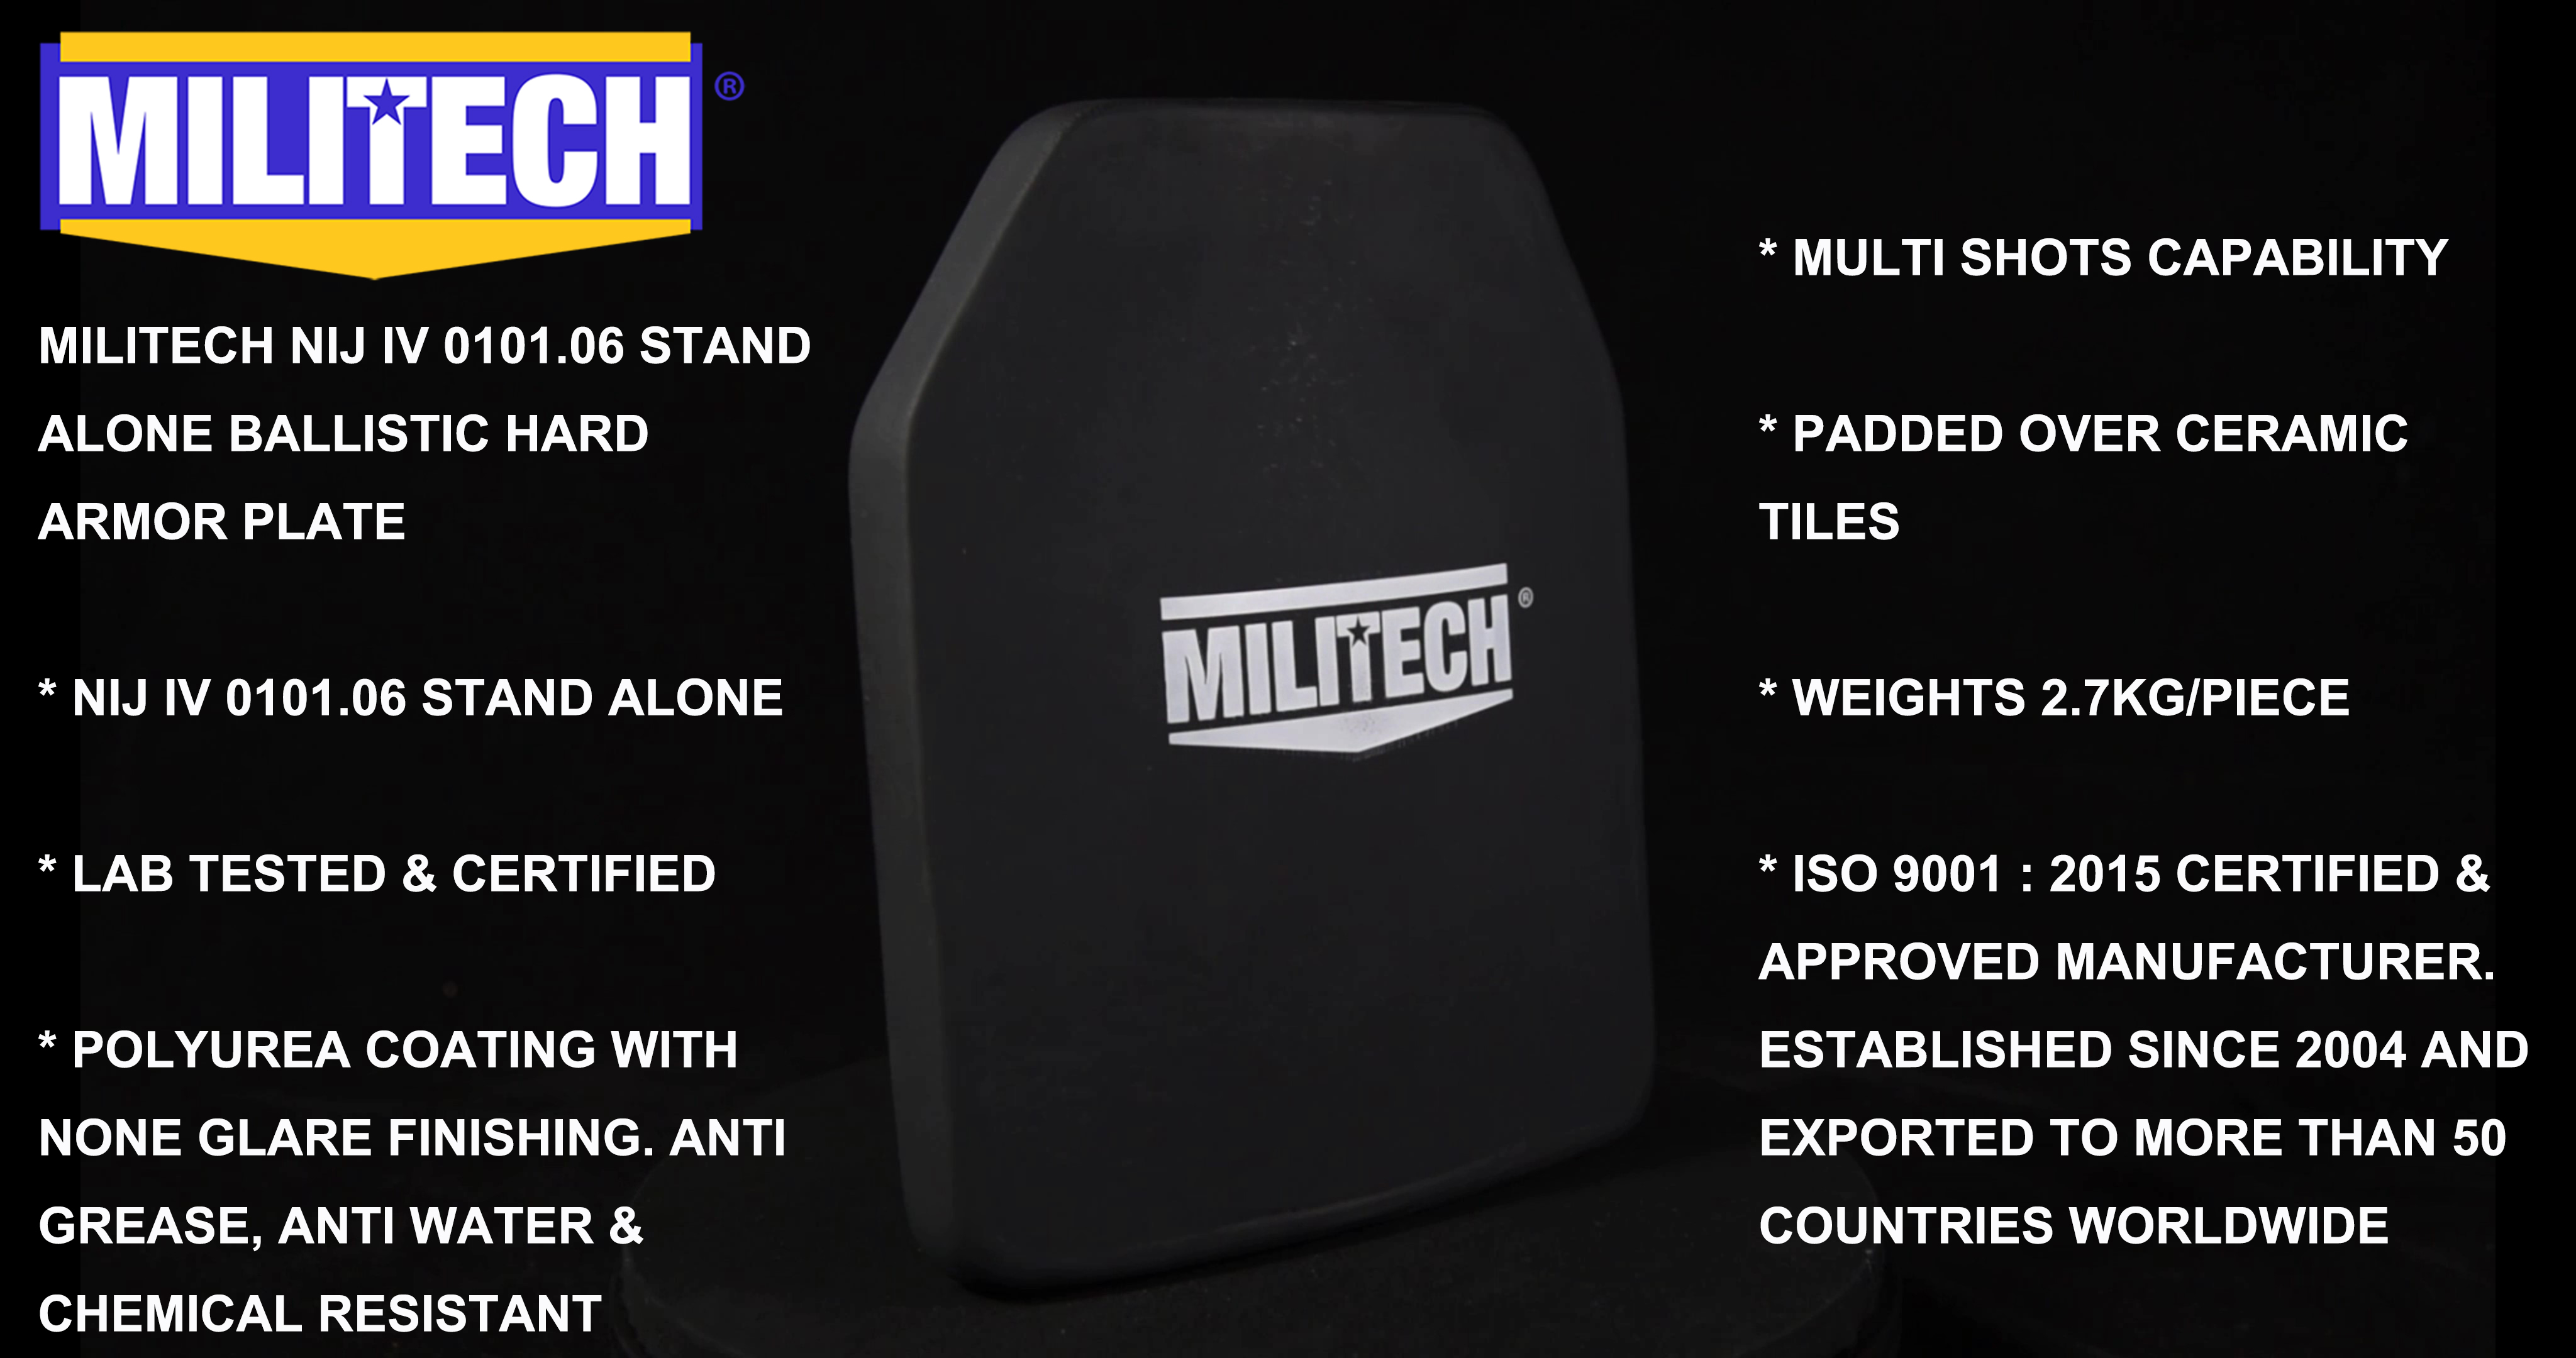 Commercial Video--MILITECH 10x12 Shooters Cut Hard Ballistic Panel NIJ IV 0101.06 Hard Armor Bulletproof Panel Commercial